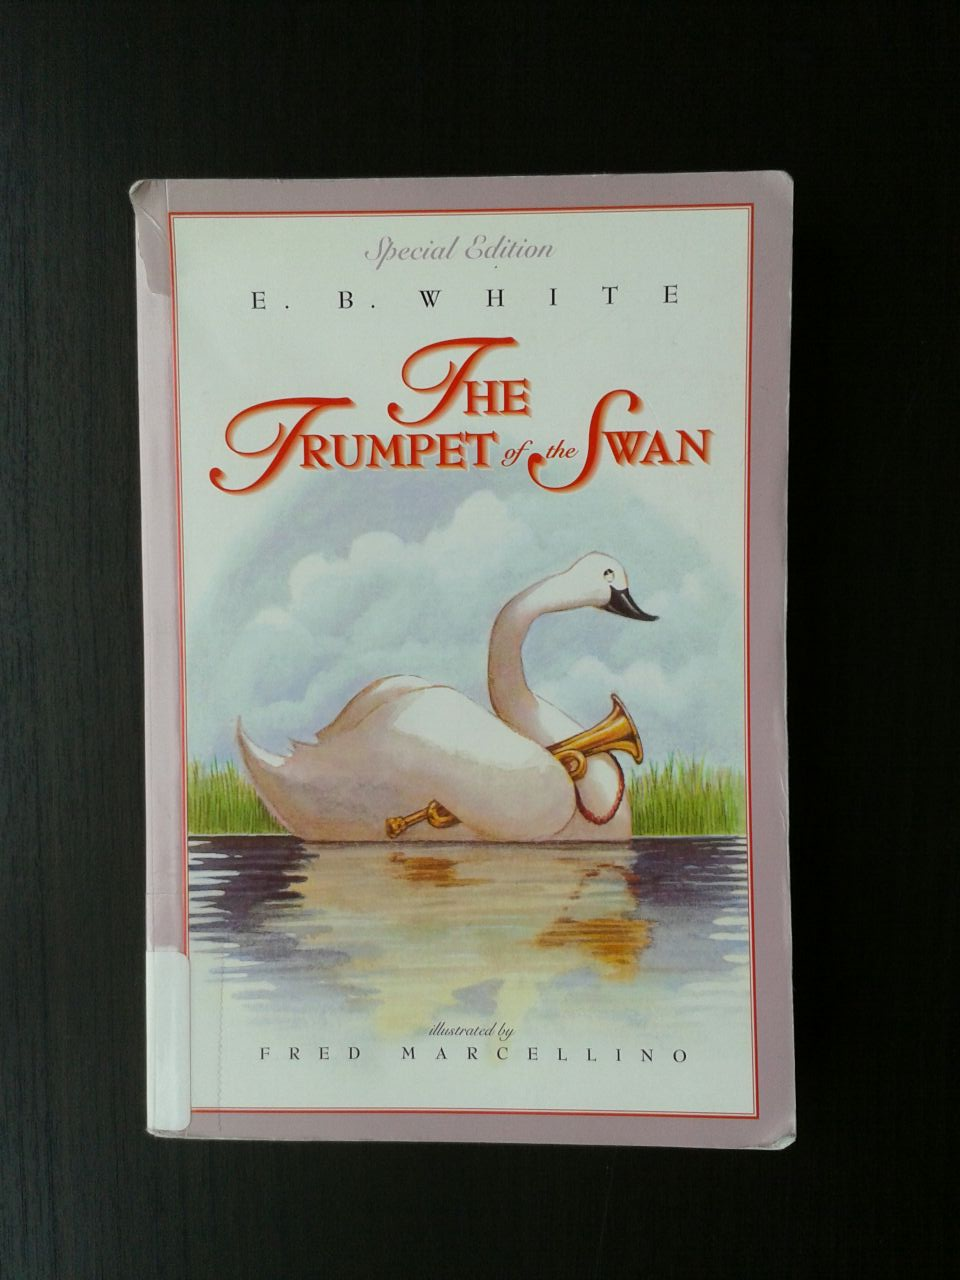 Tag: review of The Trumpet of the Swan